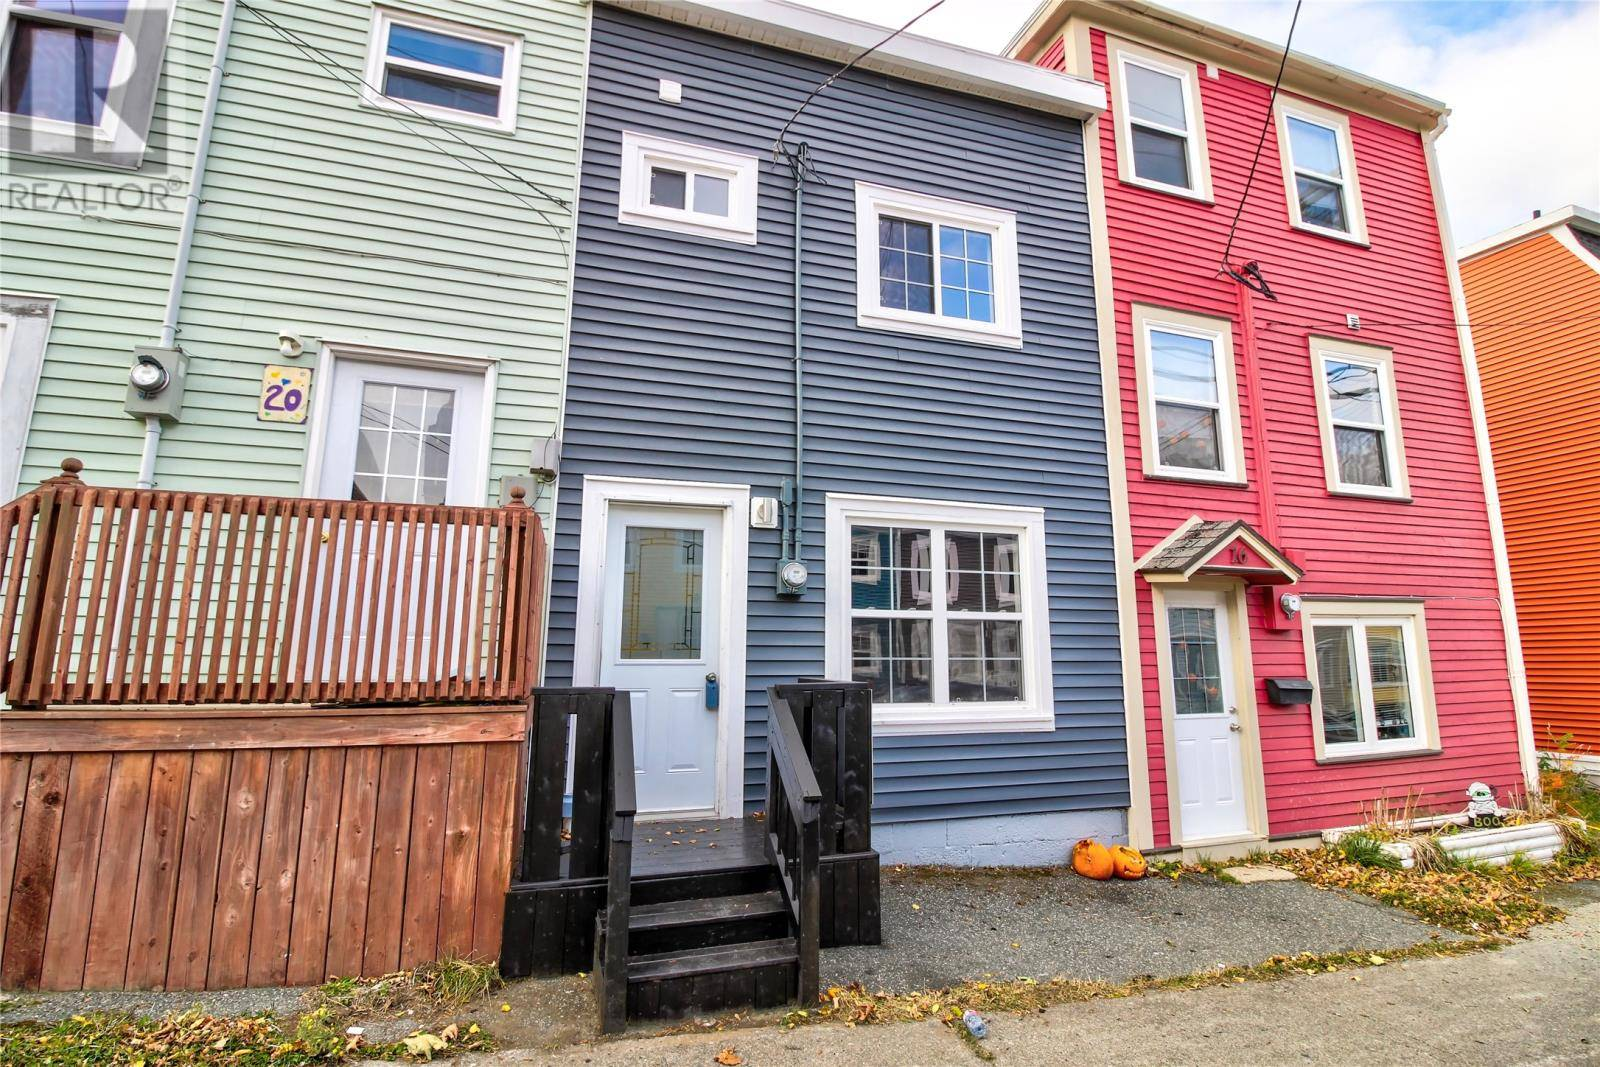 House for sale at 18 Mullock St St. John's Newfoundland - MLS: 1205599